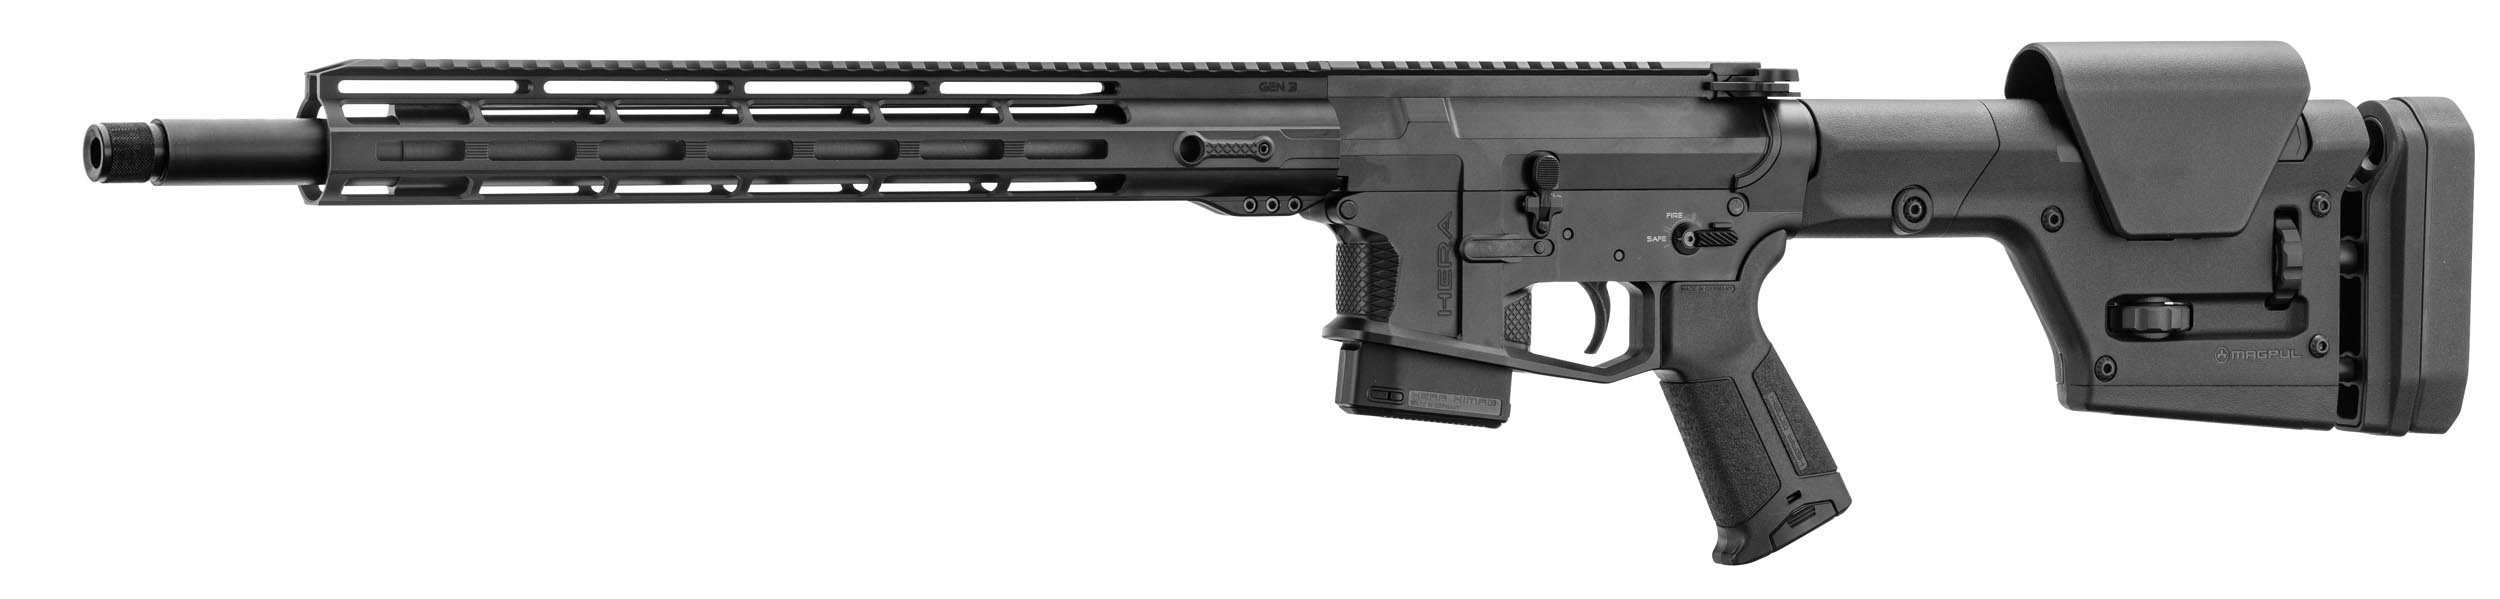 HA325-6 AR15 HERA ARMS 15th LS060/US100  223REM M-LOCK - HA325